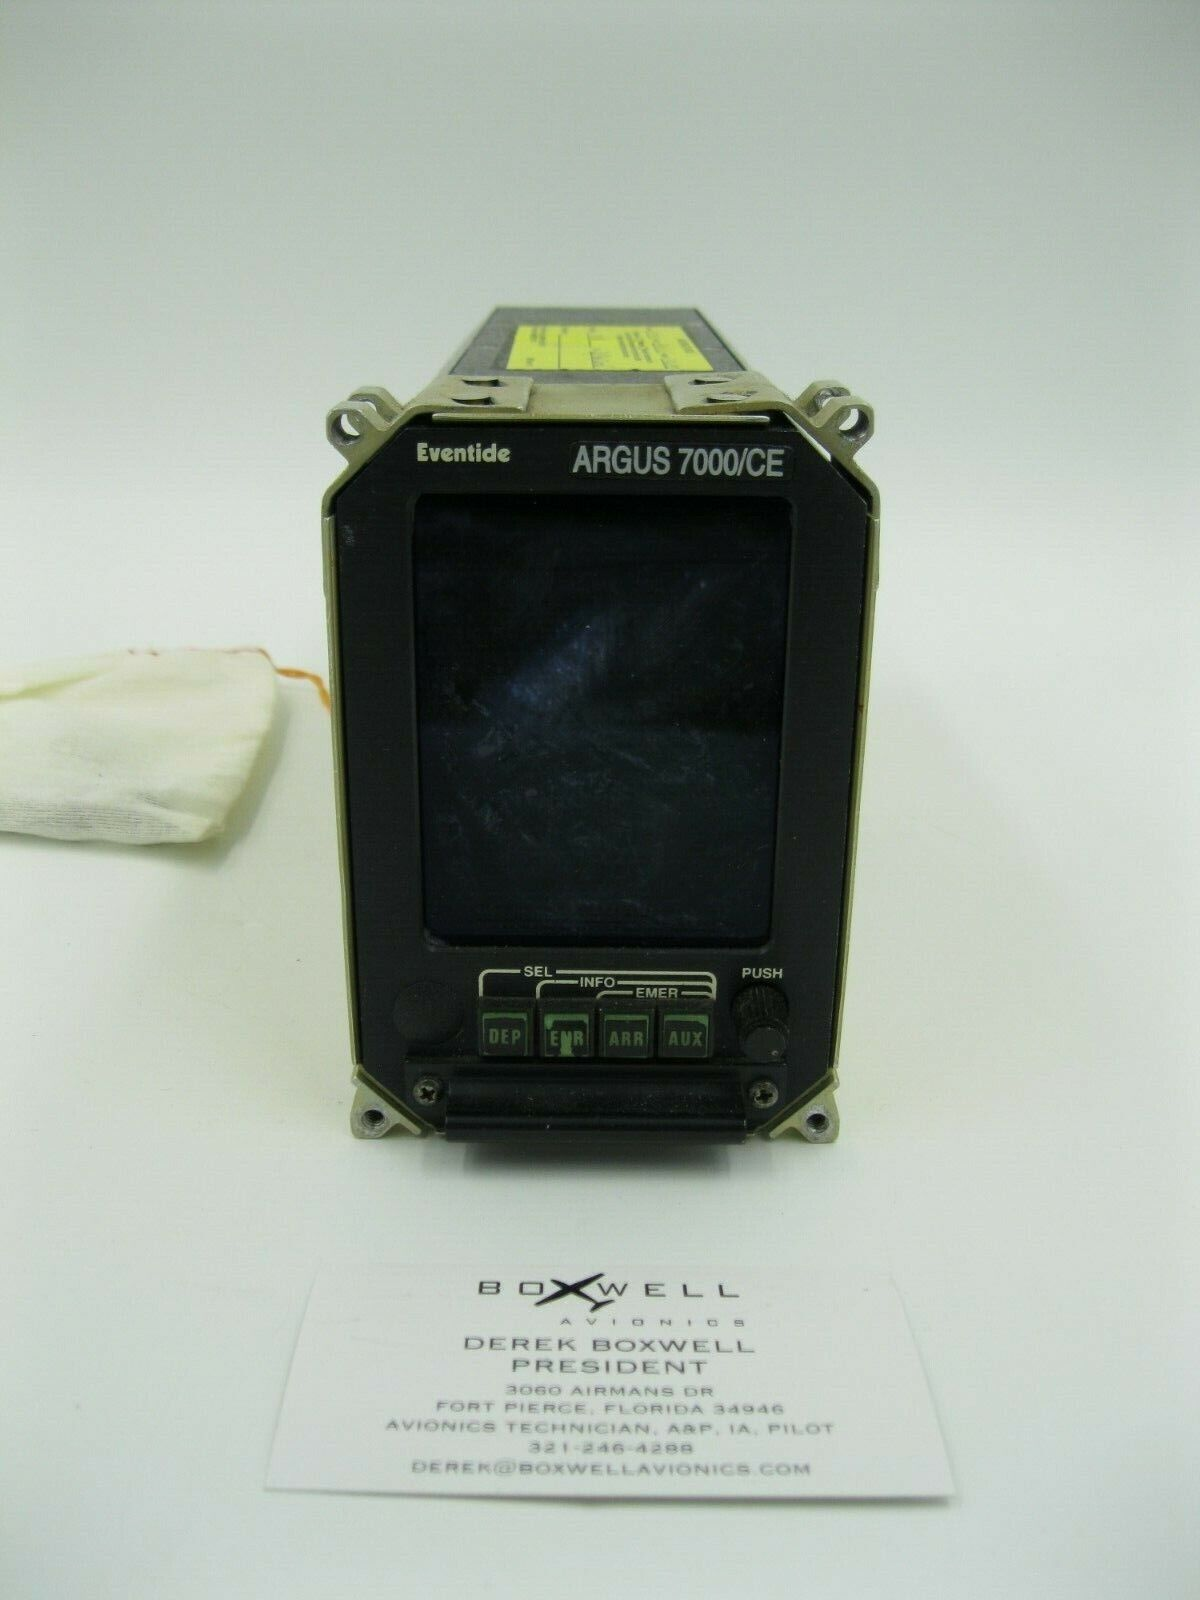 Eventide Argus Color Moving Map Display 7000/CE